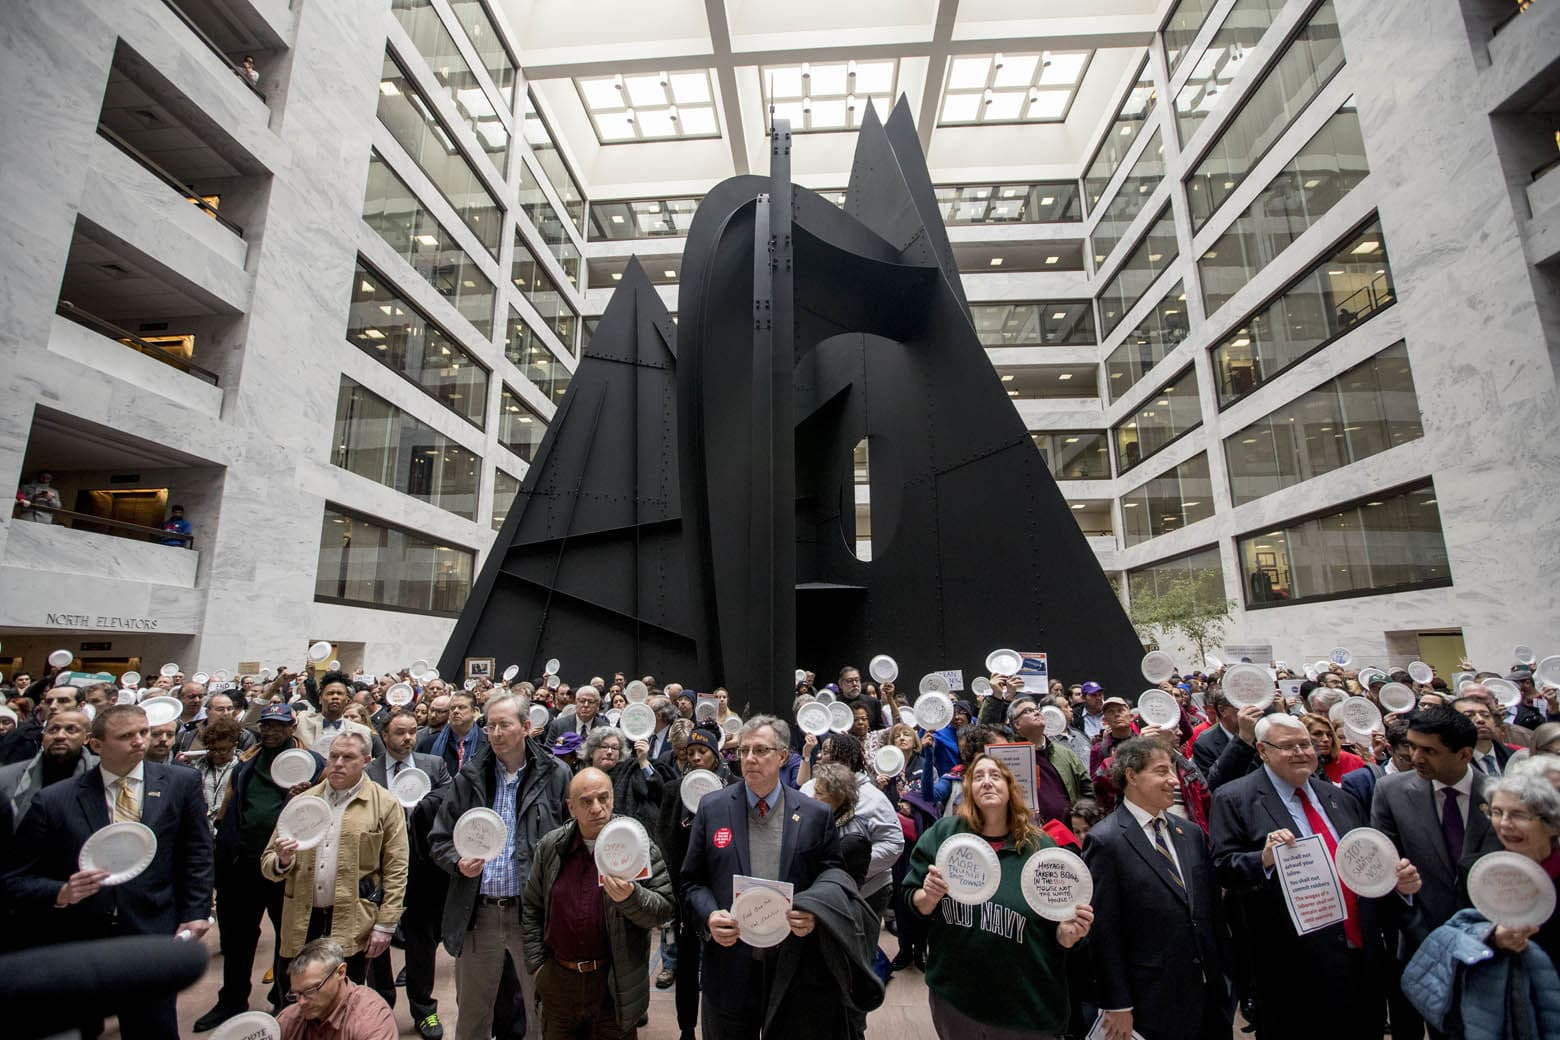 Furloughed government workers affected by the shutdown hold a silent protest against the ongoing partial government shutdown on Capitol Hill in Washington, Wednesday, Jan. 23, 2019. (AP Photo/Andrew Harnik)